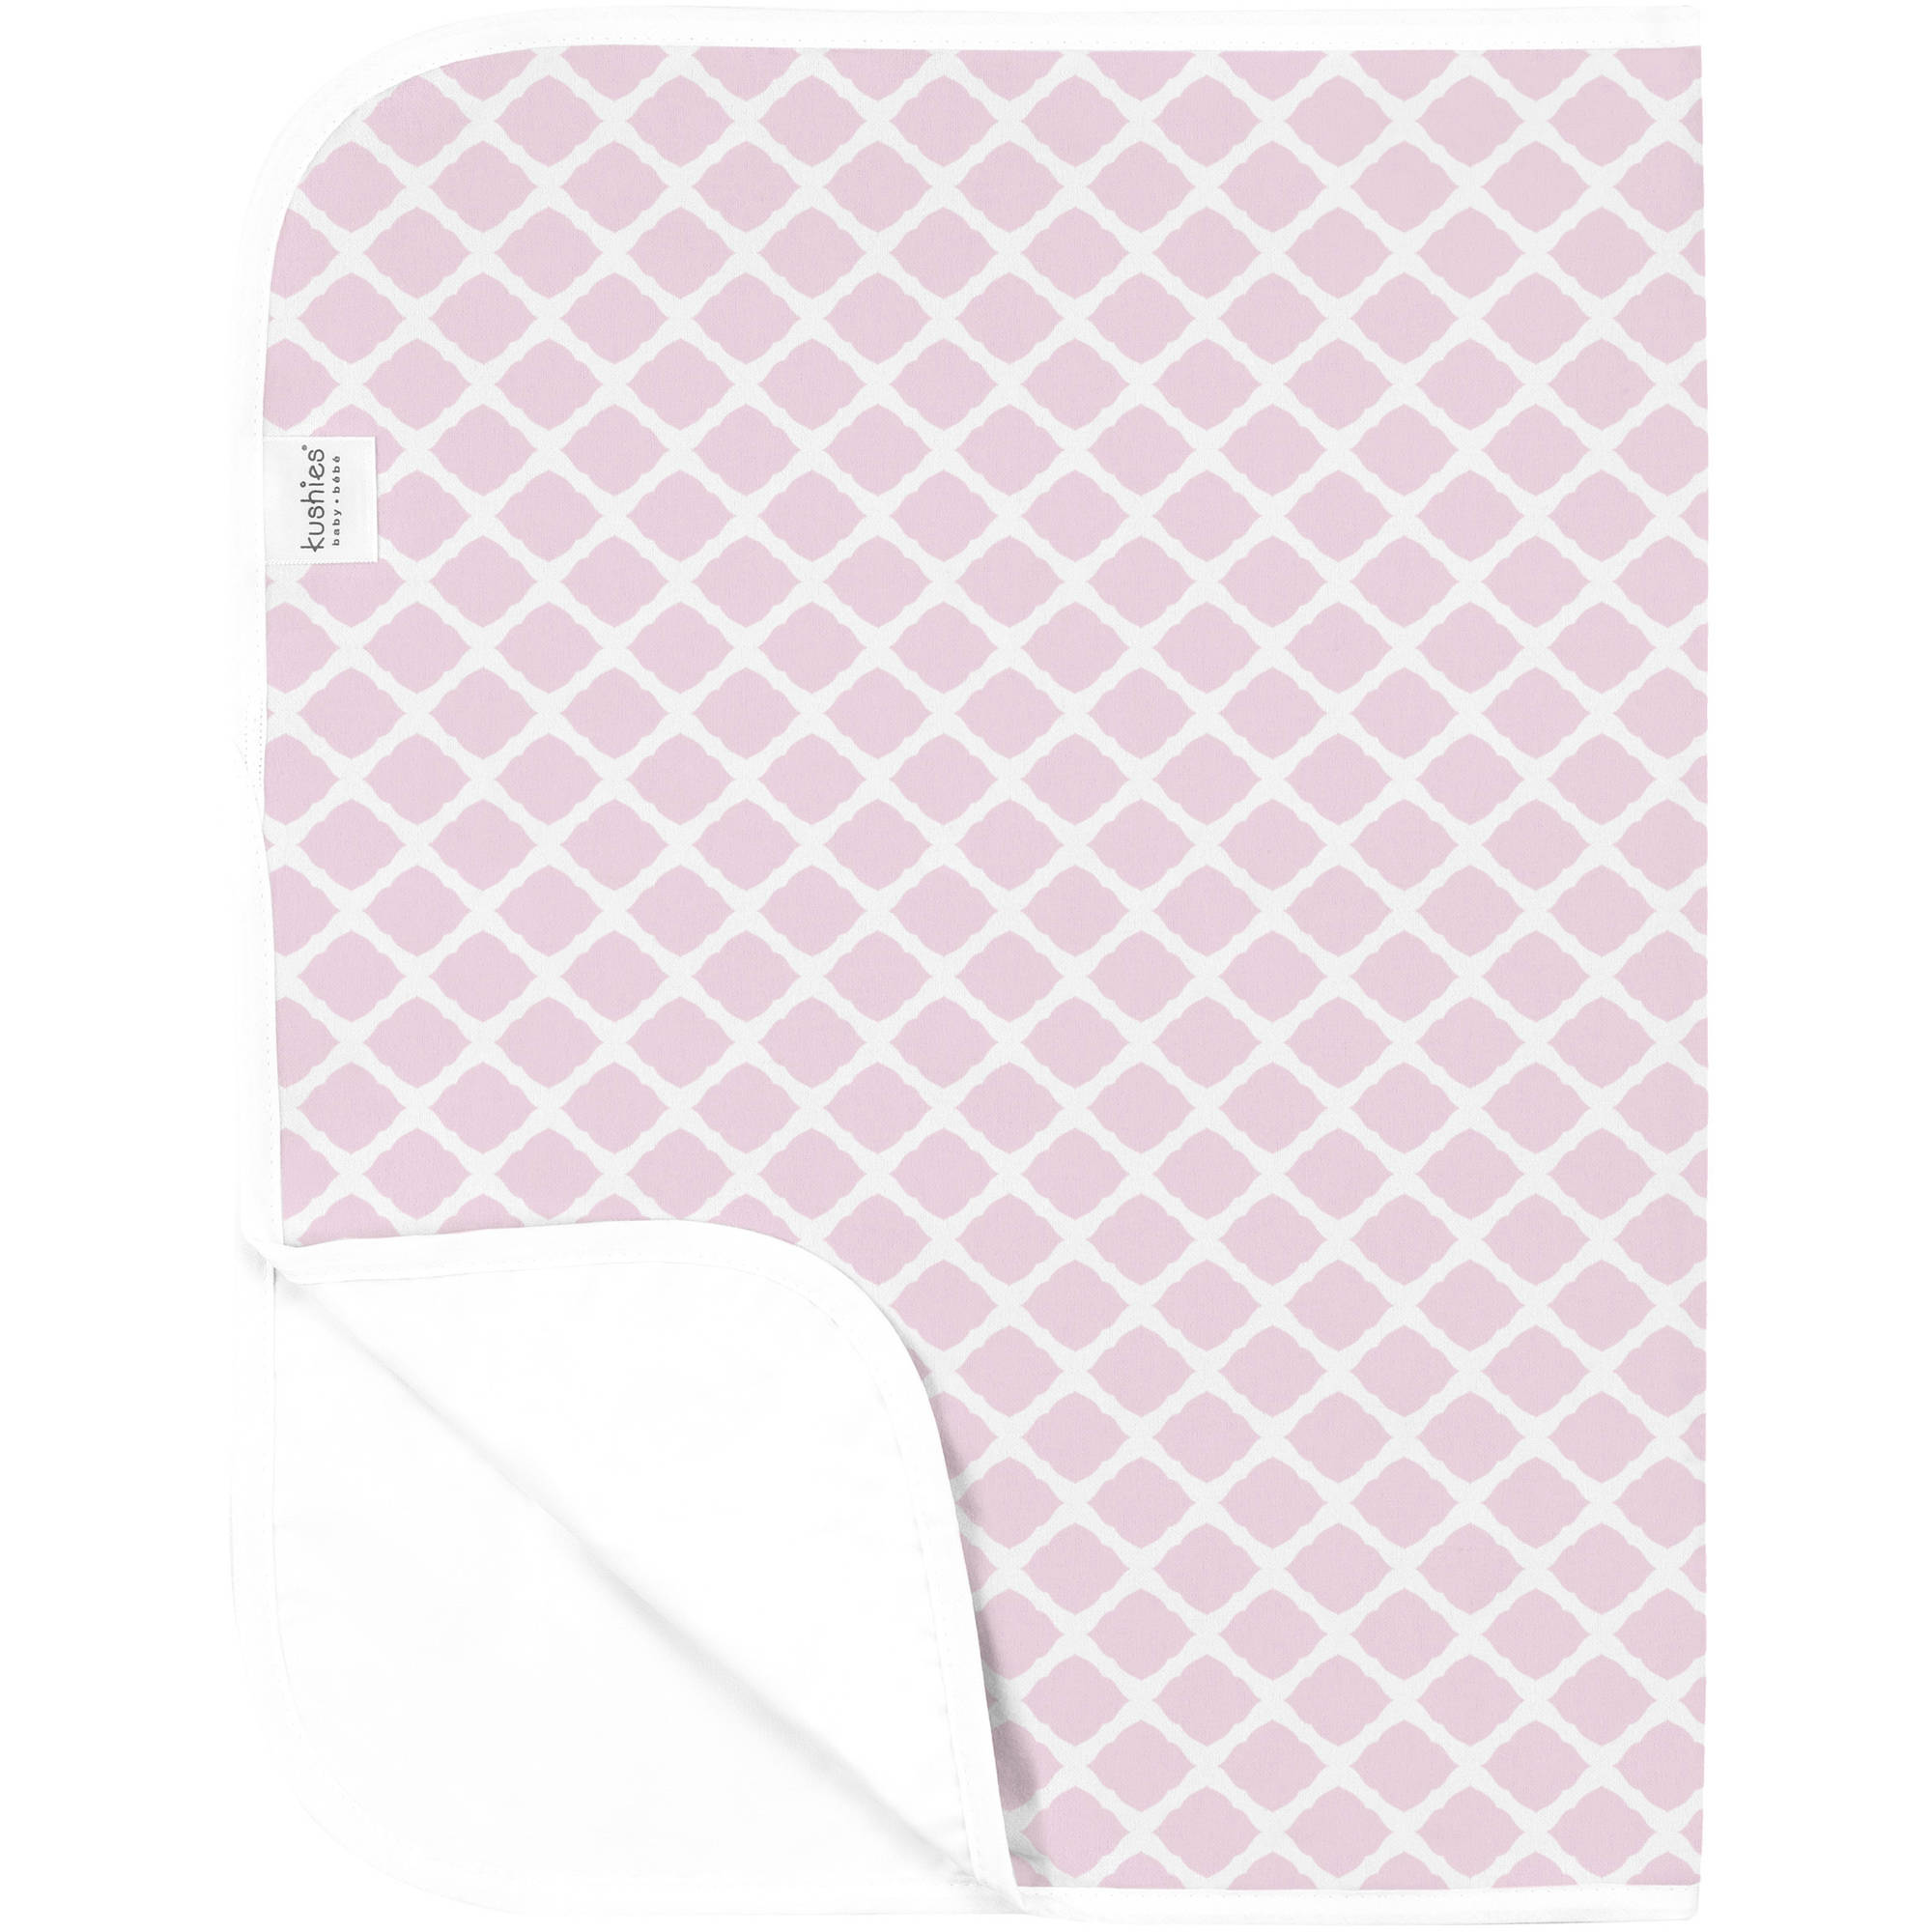 Kushies Deluxe Flannel Change Pad, Lattice Pink